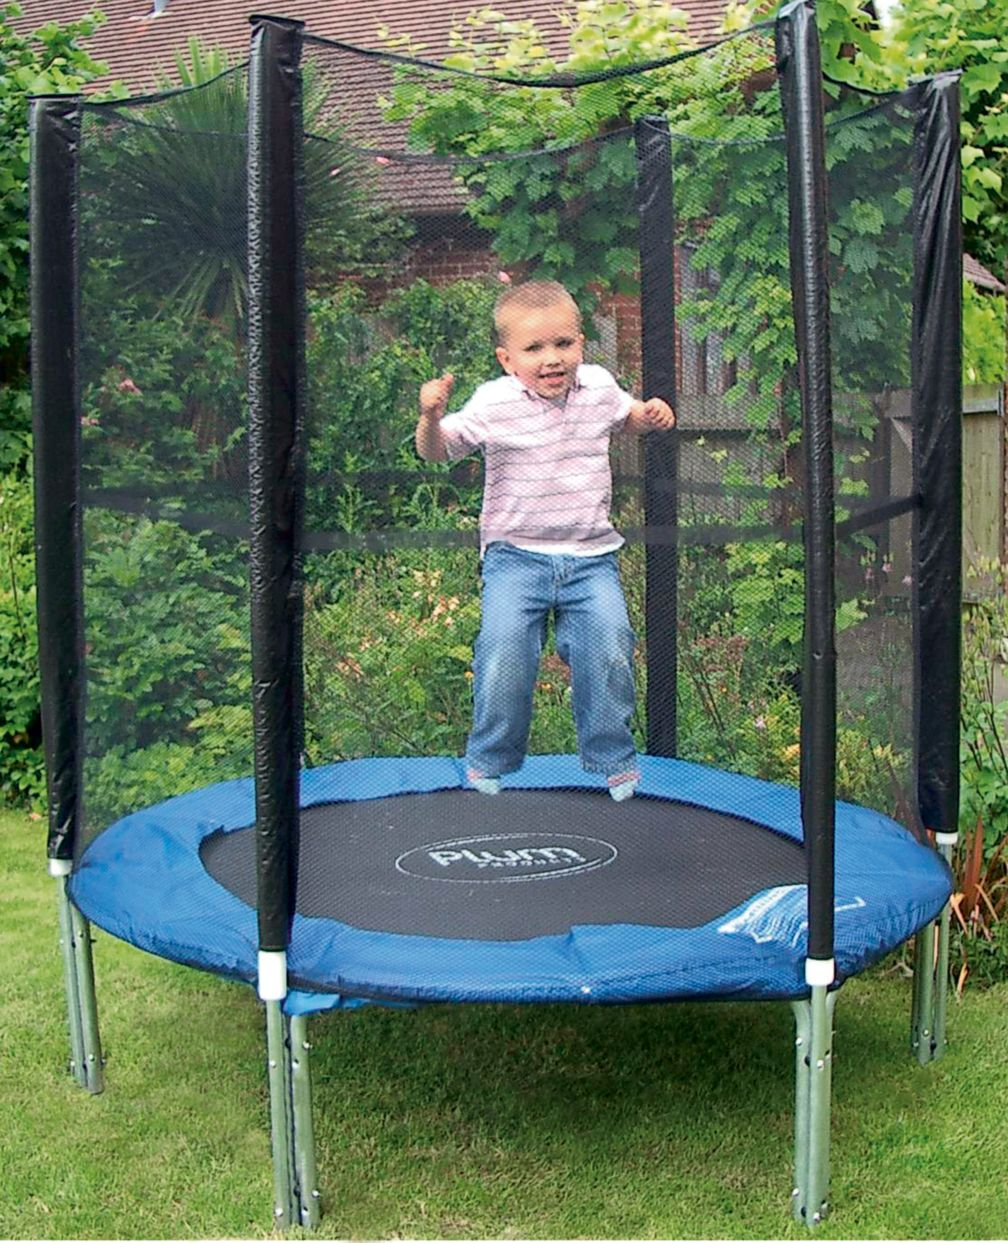 Buy Cheap Plum Trampoline Compare Products Prices For